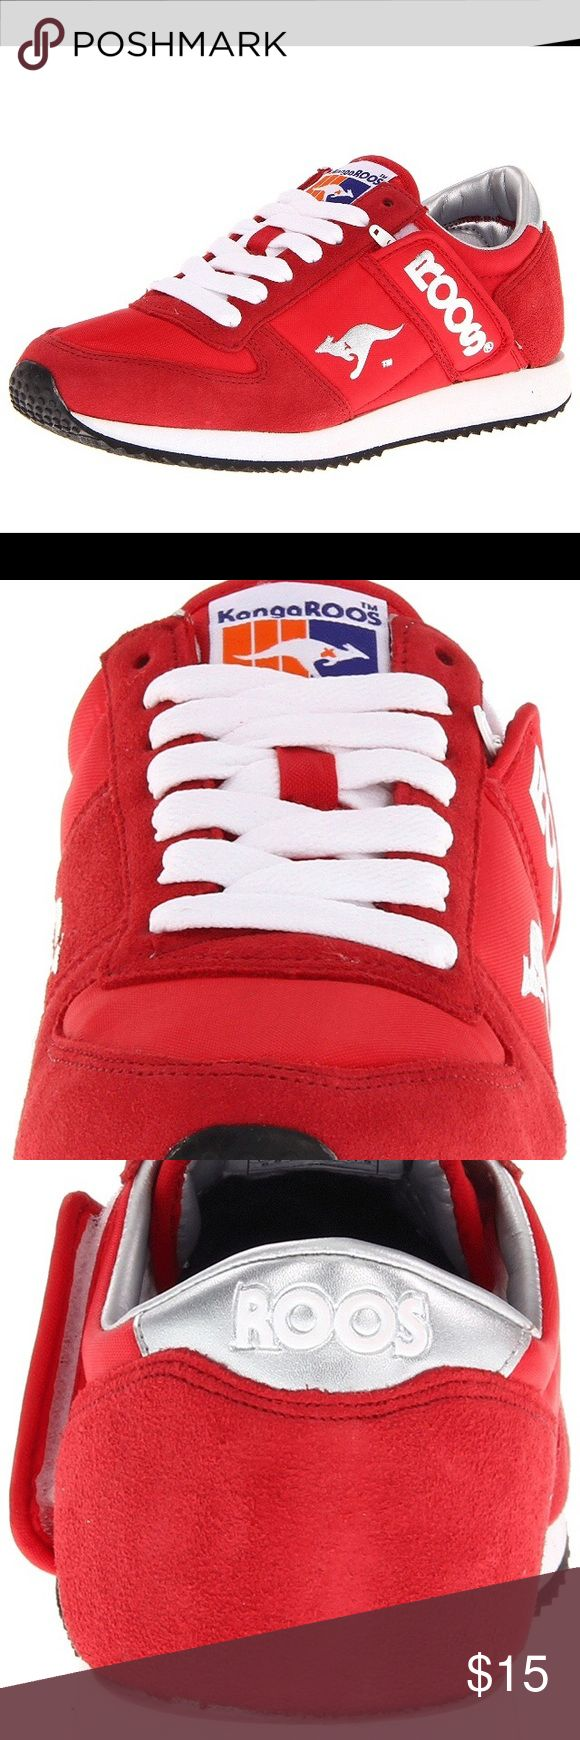 KangaRoos sneakers Roos sneakers with trademark pocket in a vibrant red; worn once or twice, excellent used condition. KangaRoos Shoes